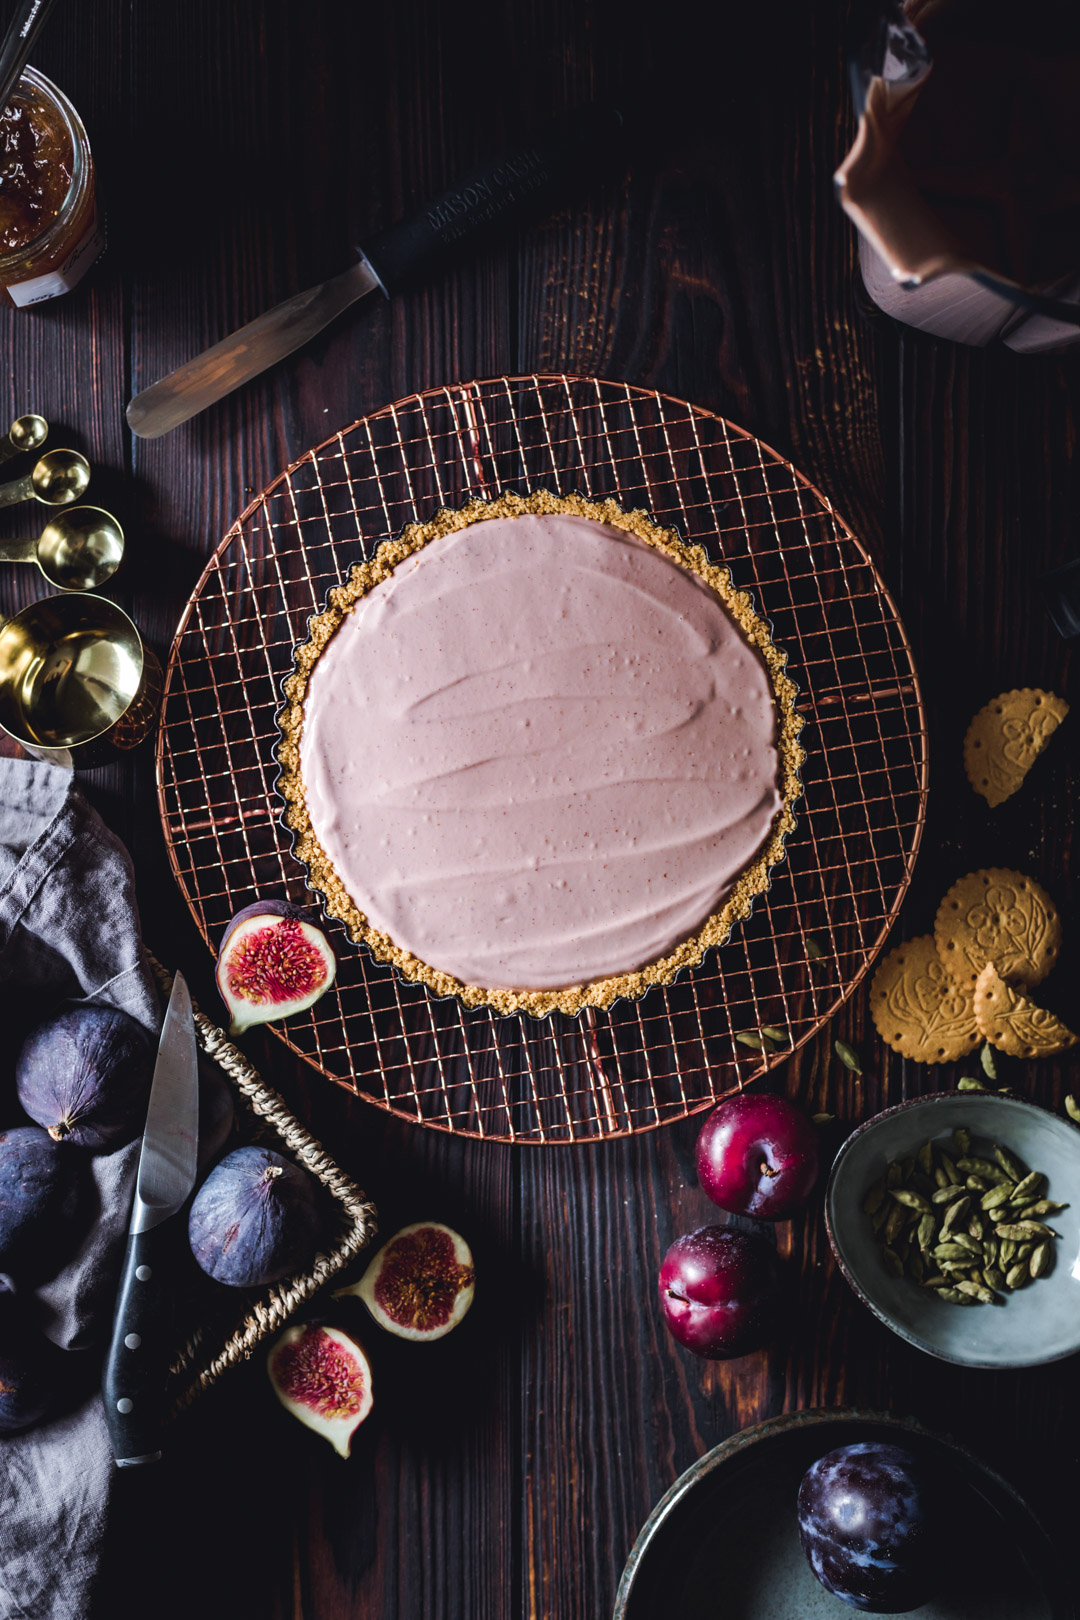 Vegan No-bake Creamy Tart